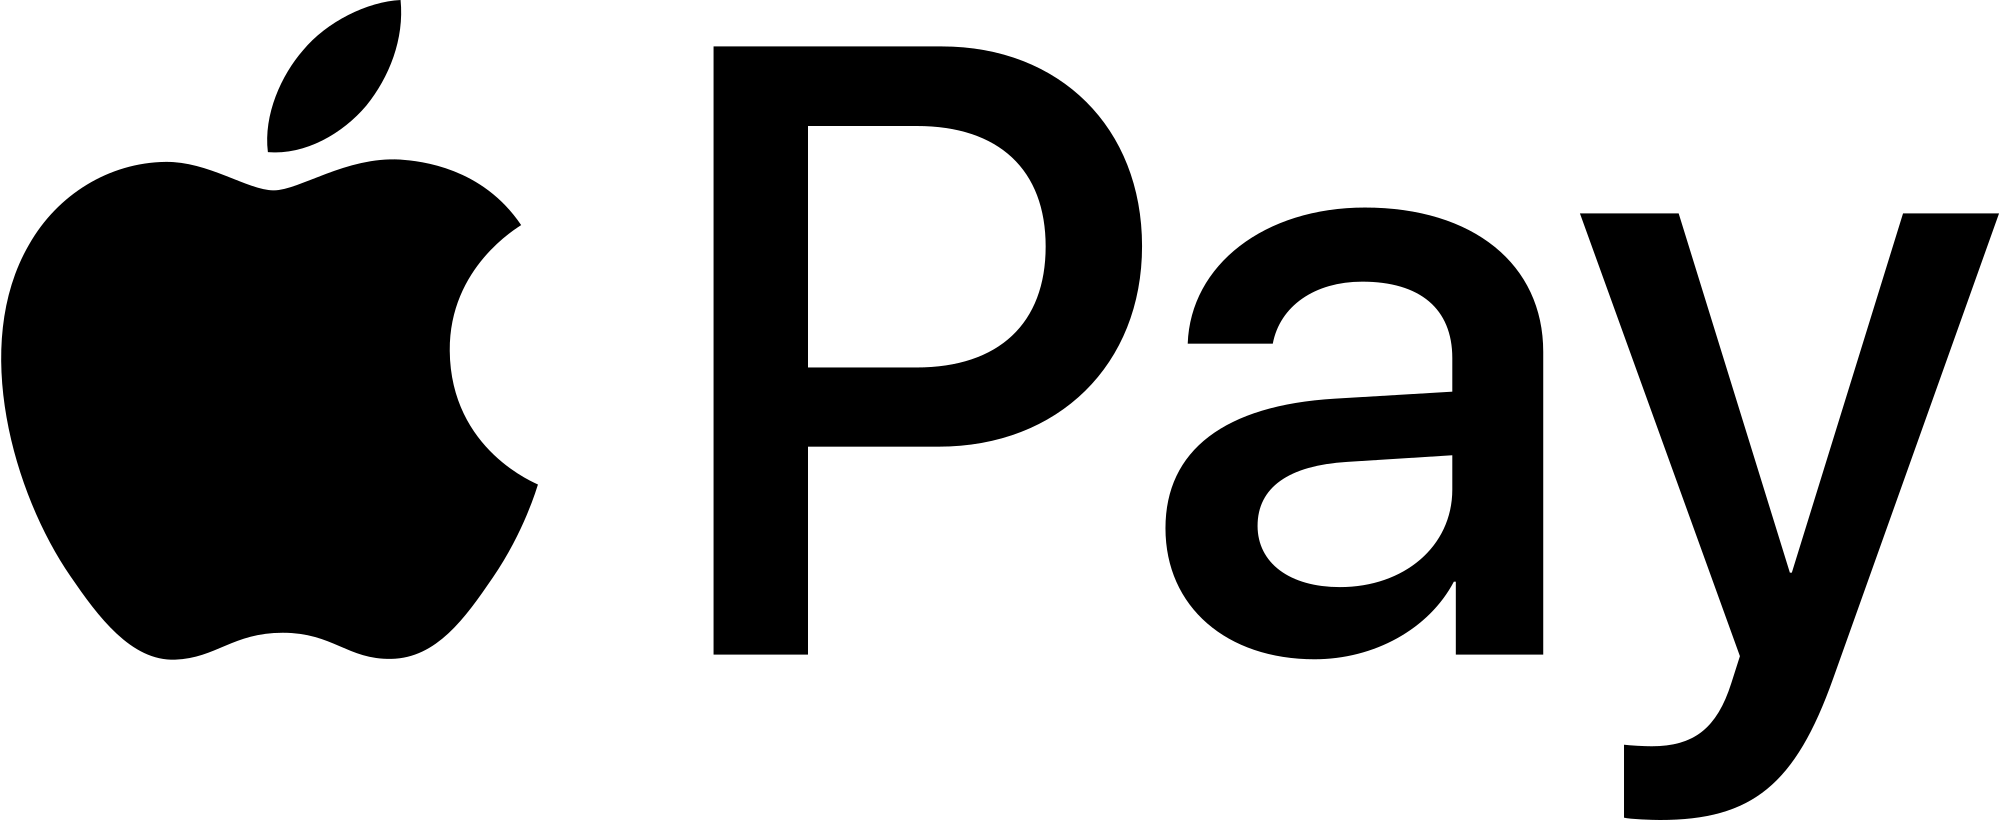 Apple apple pay Fintech iOS